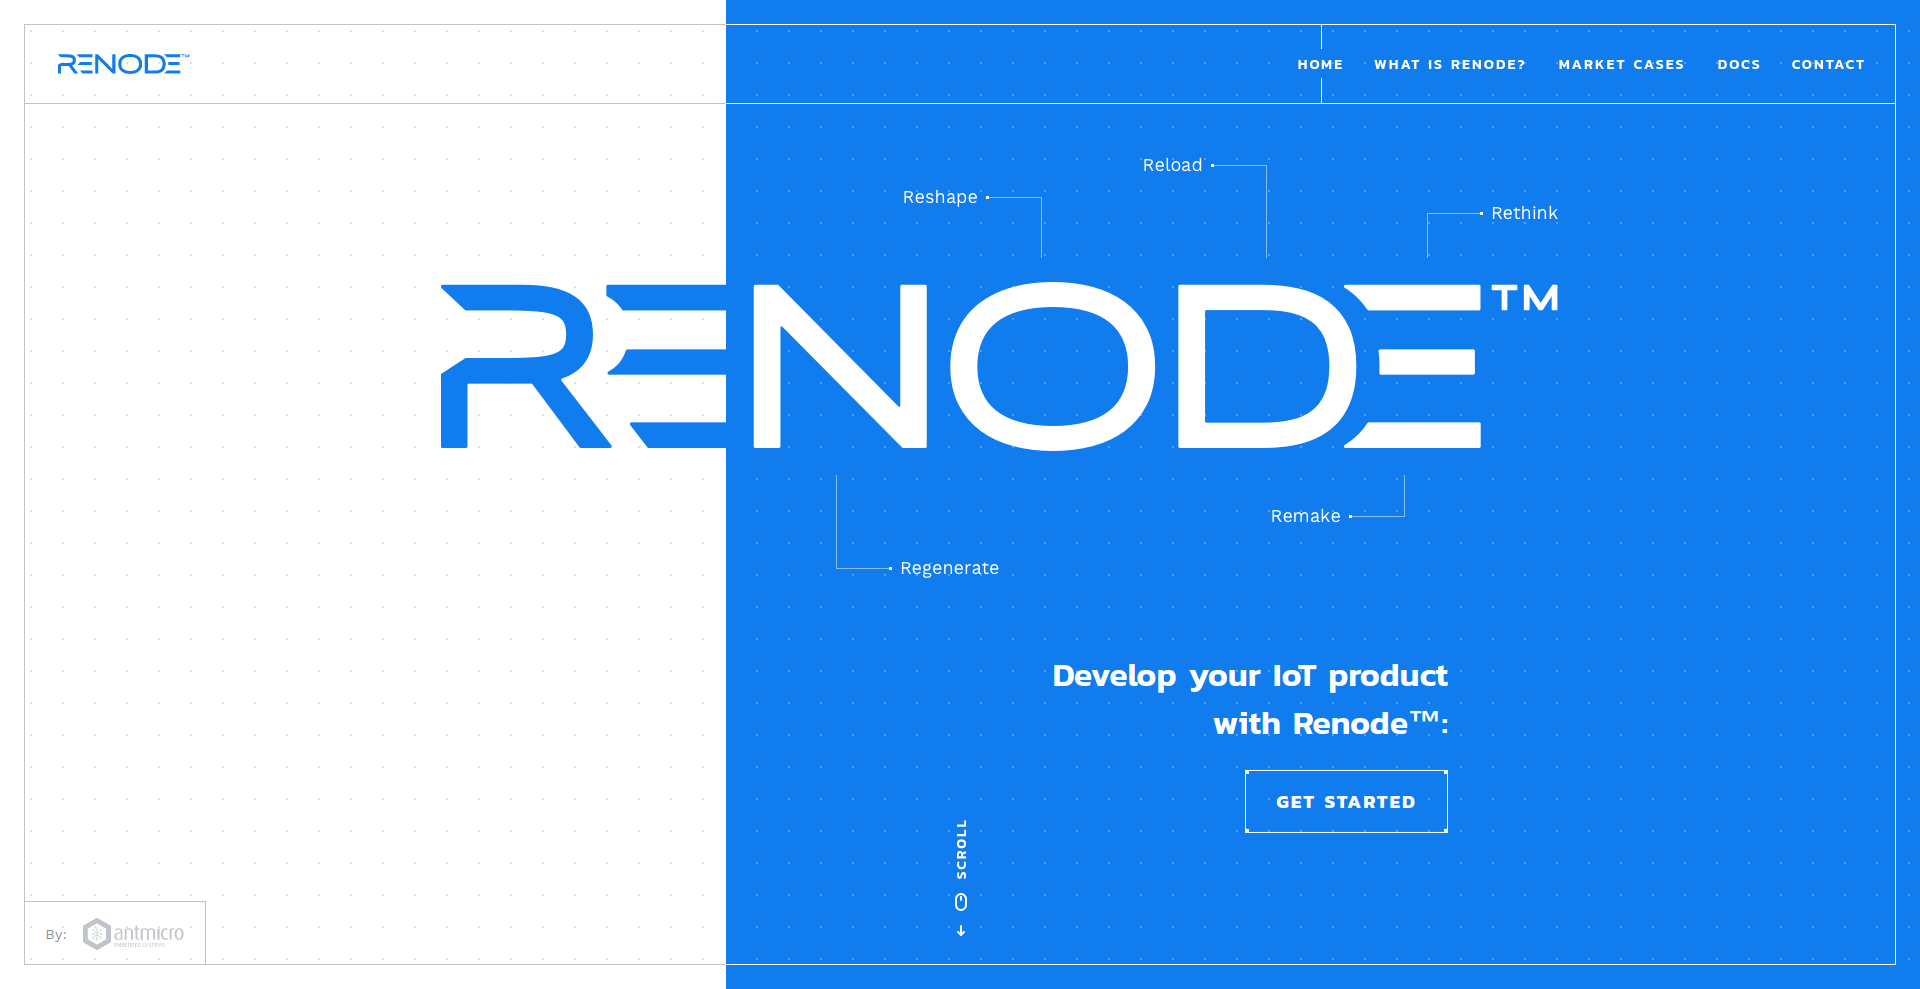 Renode website launched at the Barcelona RISC-V Workshop